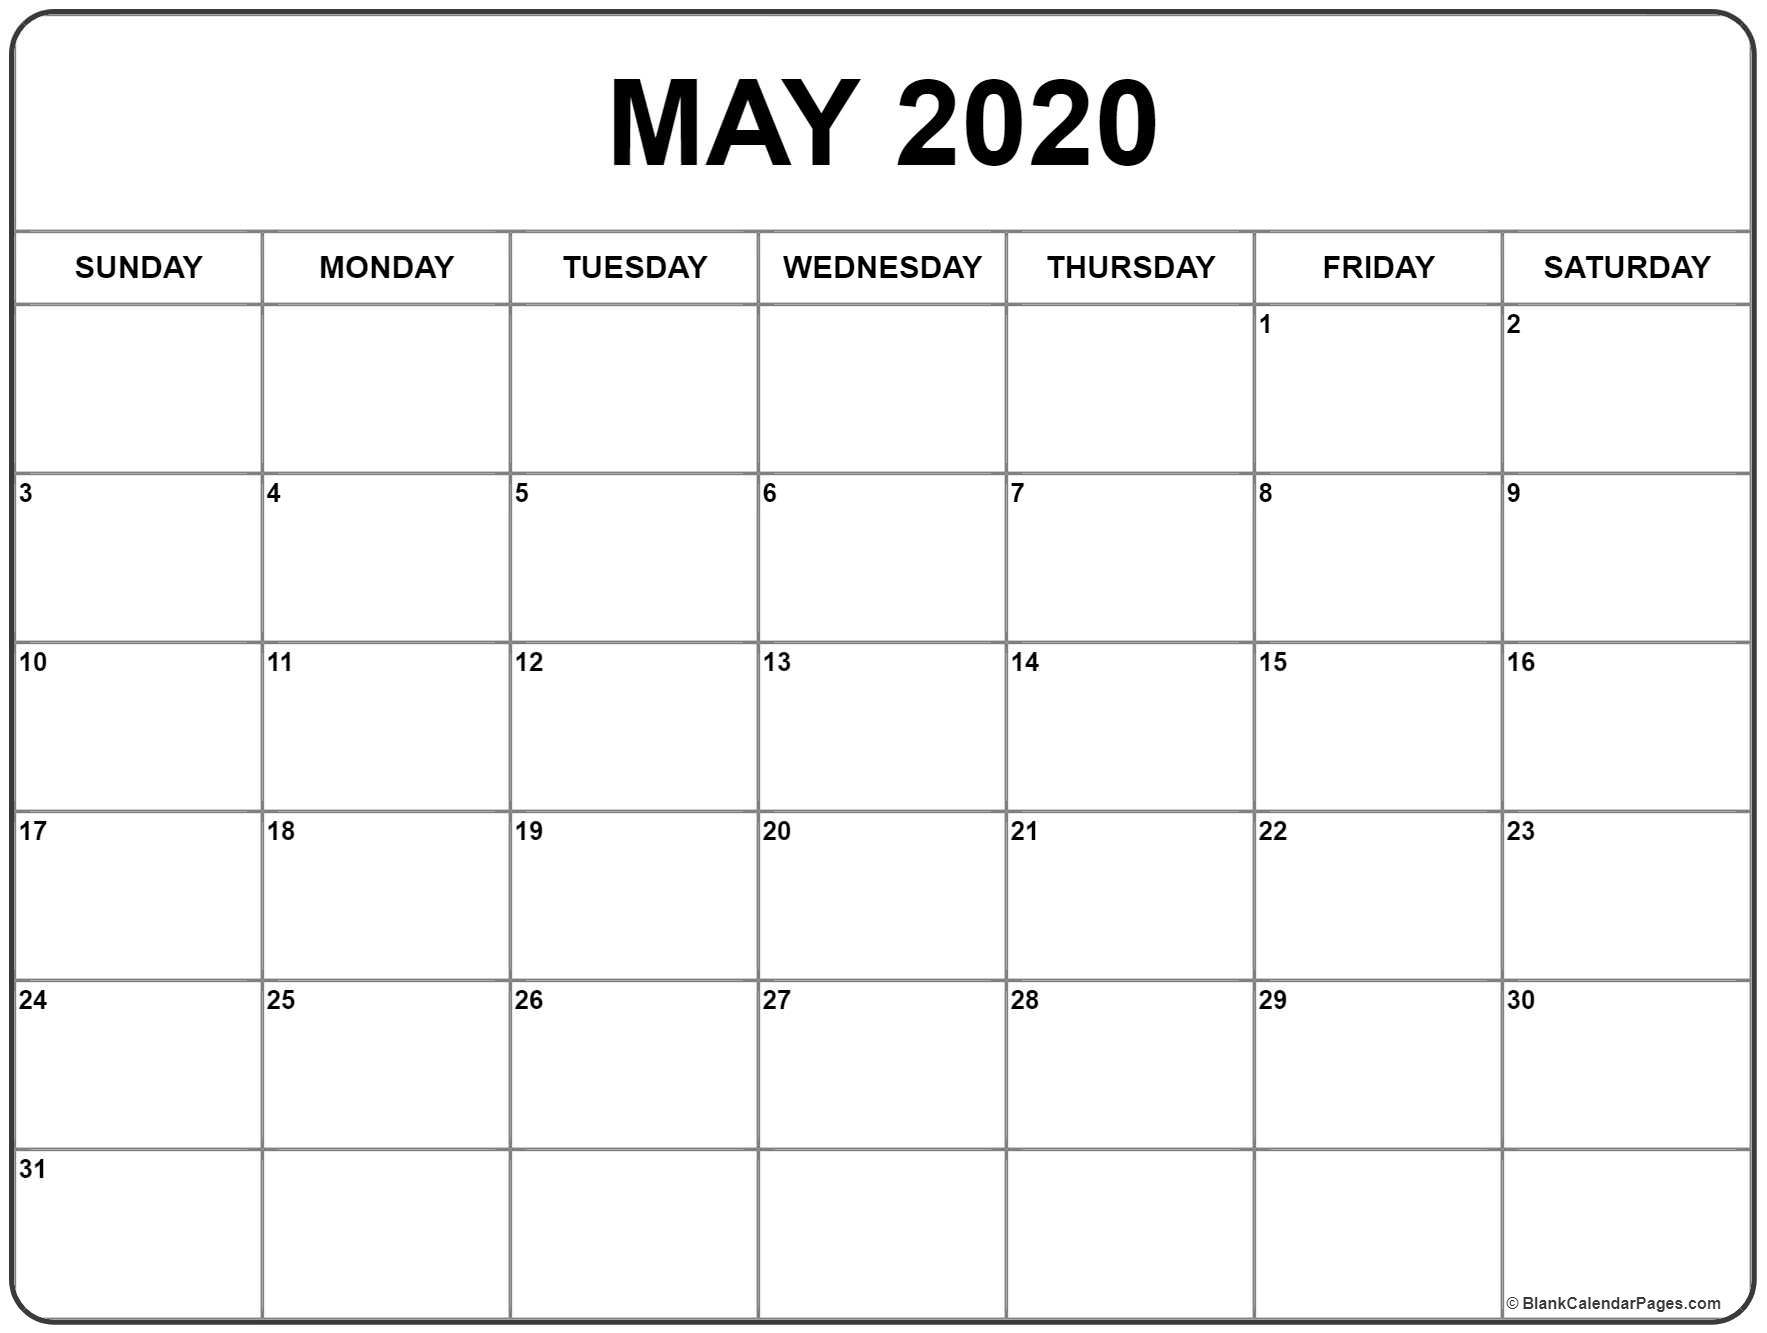 Calendar 2020 Printable Calendar Starting With Monday - Calendar for 2020 Printable Liturgical Calendar Free